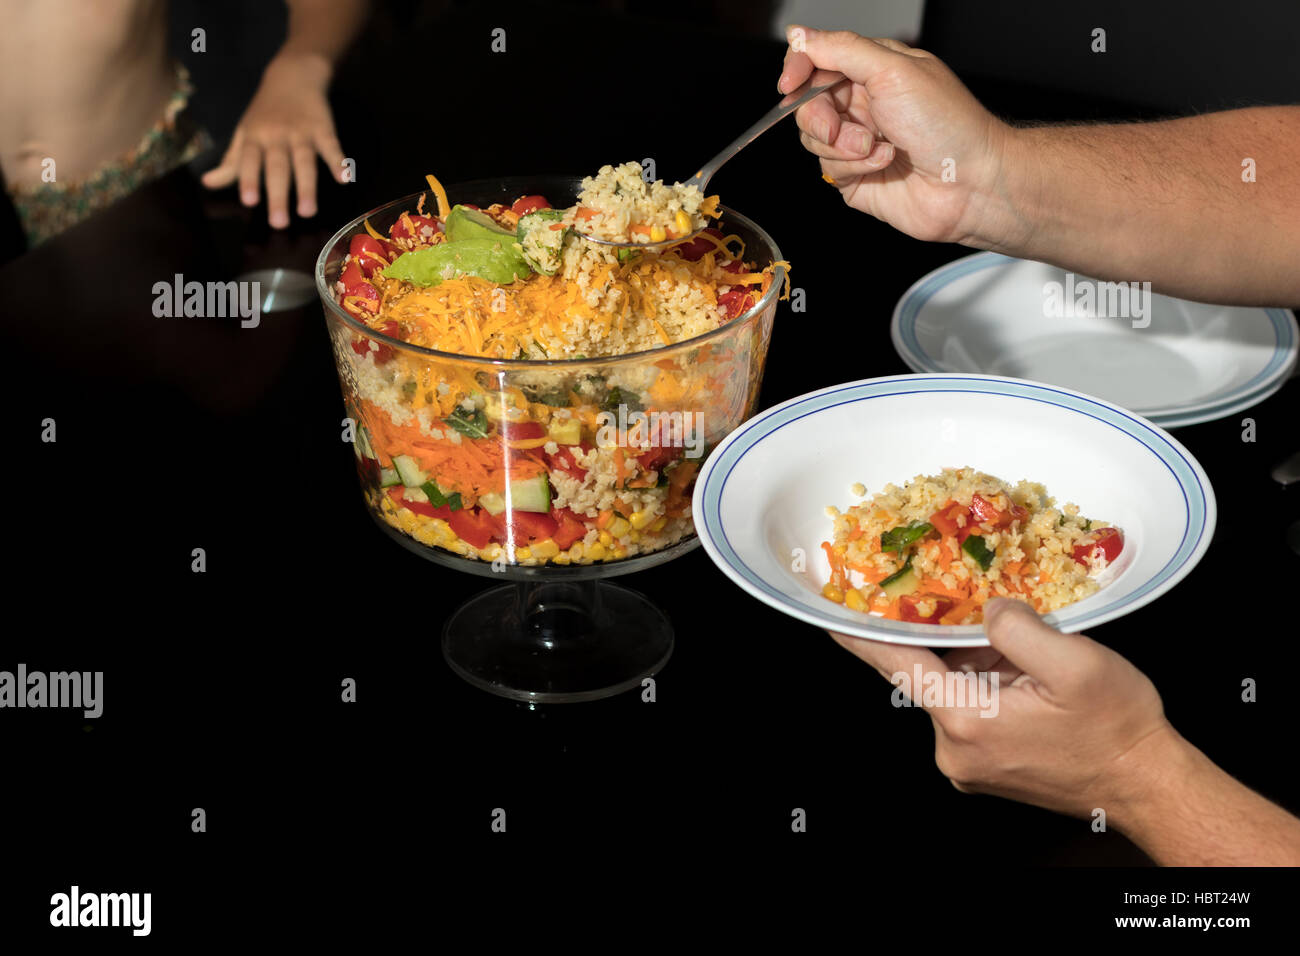 Mom serving plate of Multi Layered Salad - Stock Image